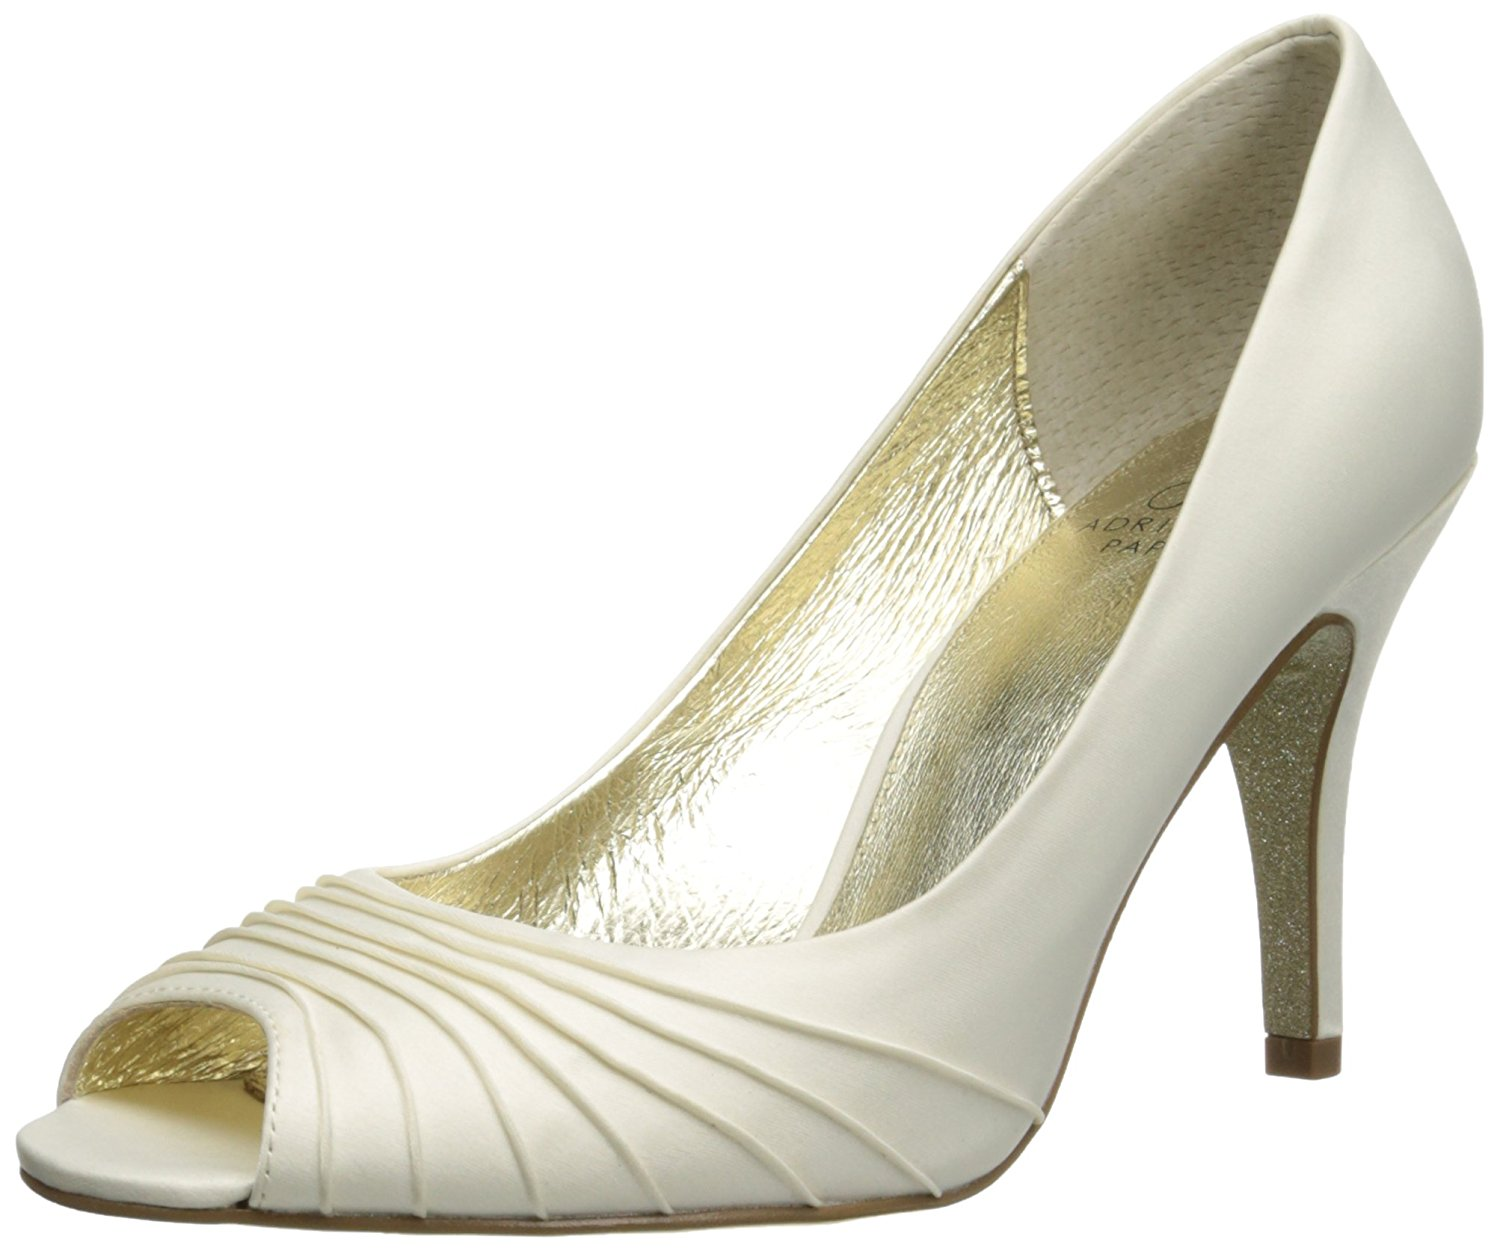 Adrianna Papell Womens Farrel Silk Peep Toe Classic Pumps Ivory Satin Size 5.0